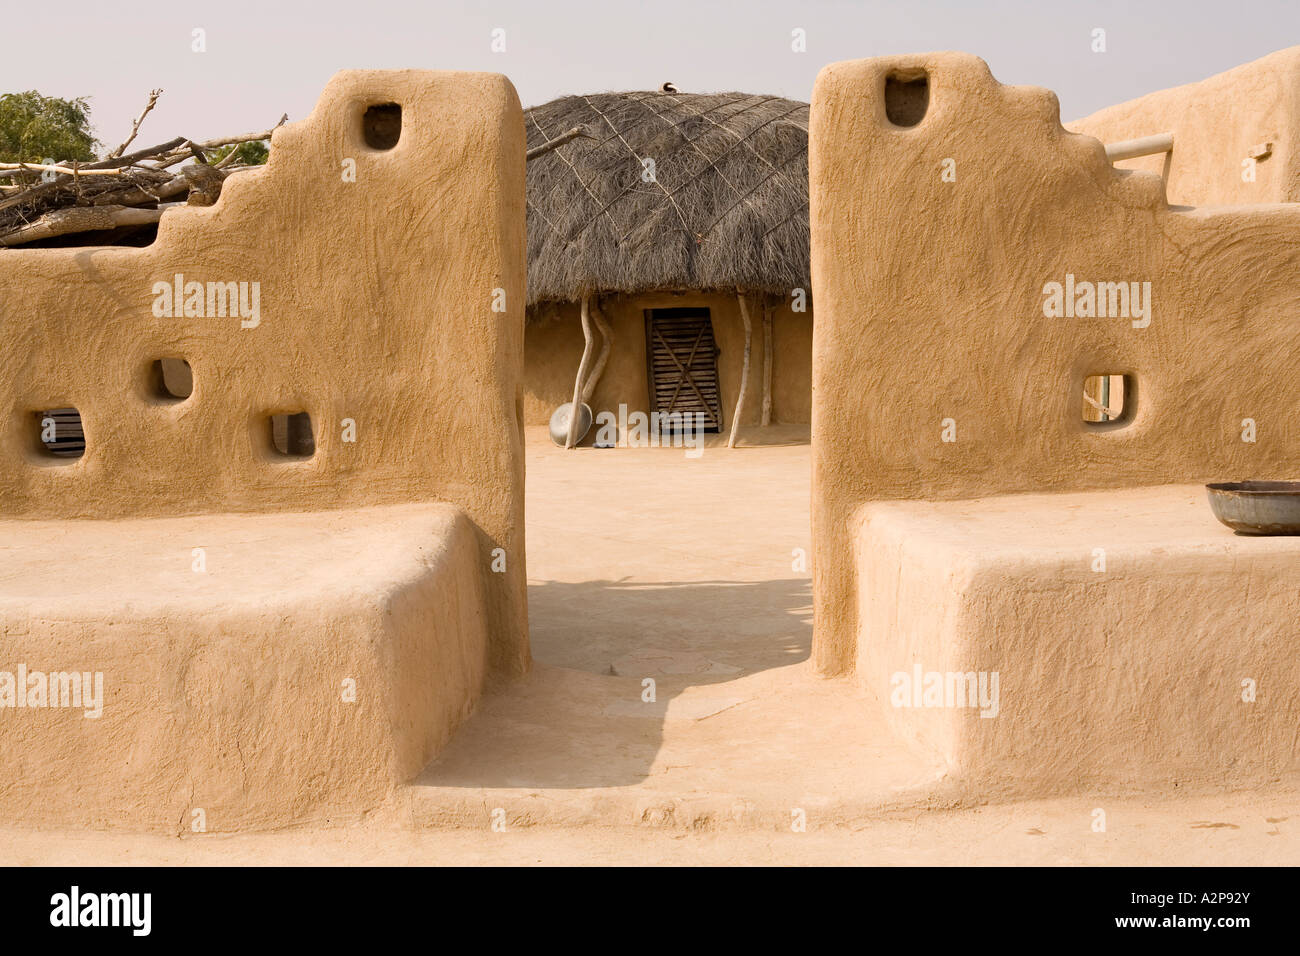 india rajasthan thar desert village architecture decorated